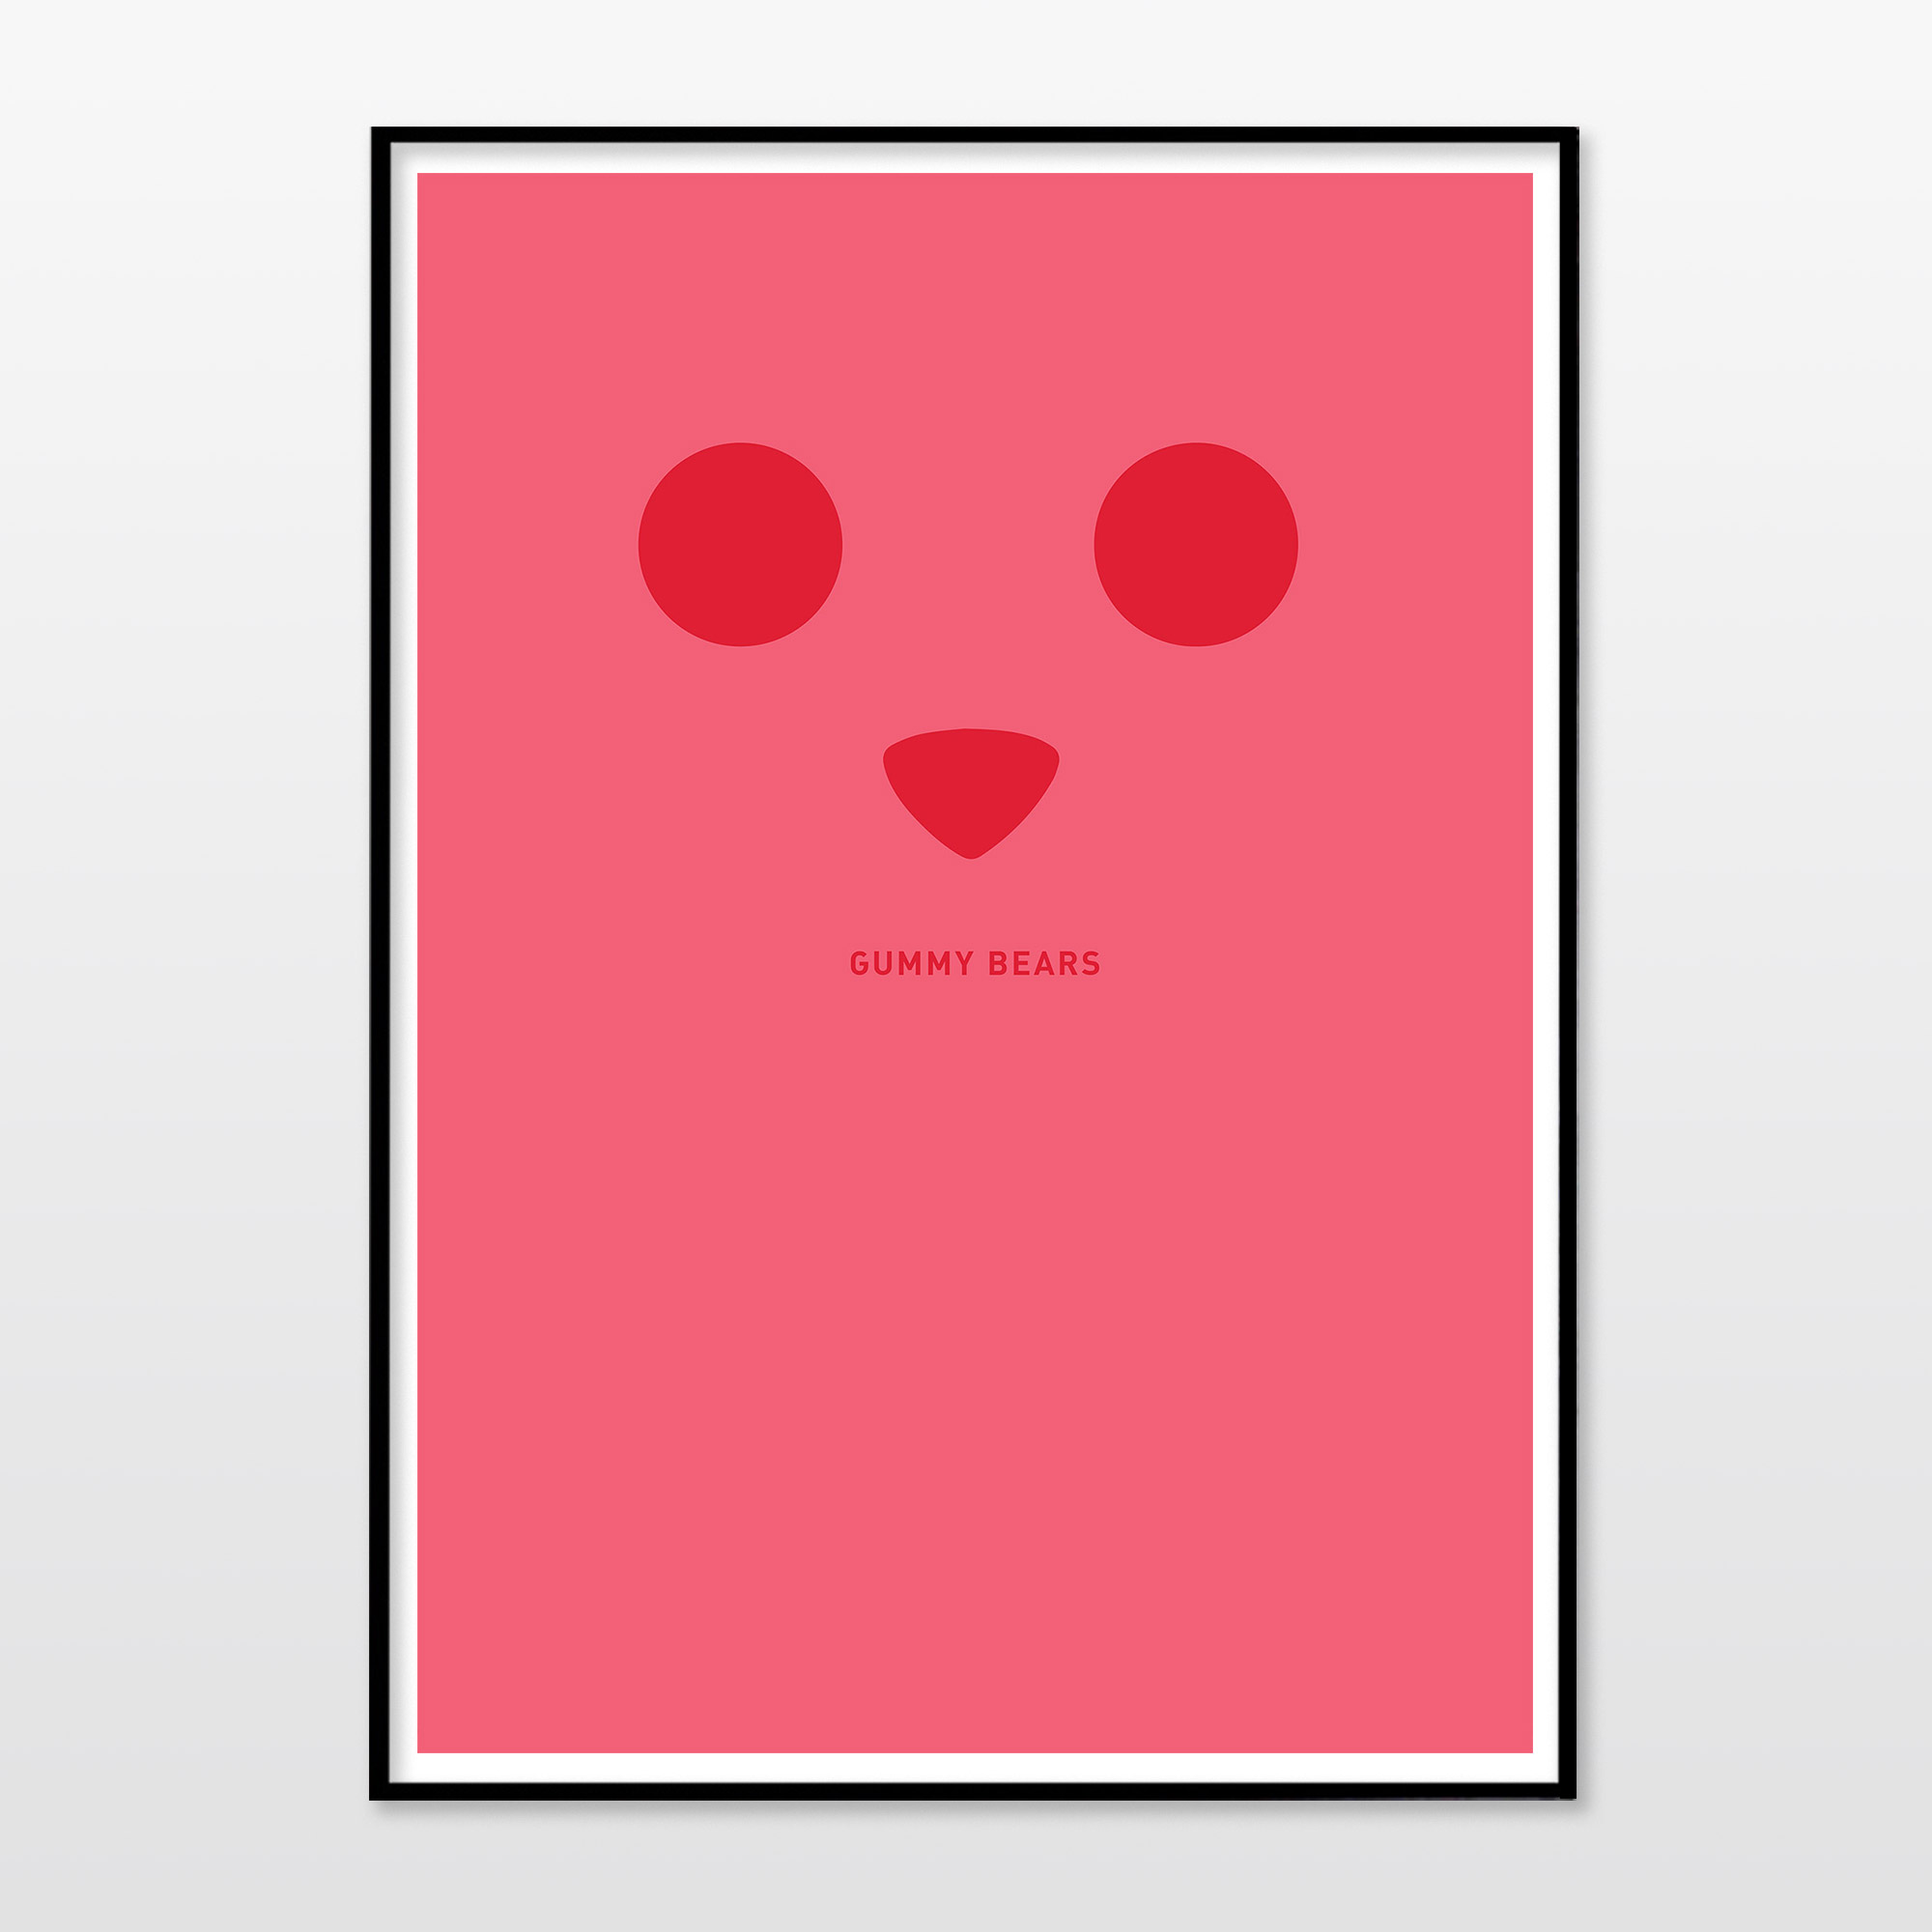 posters, giclee, aesthetic, family-friendly, graphical, minimalistic, pop, animals, cartoons, children, humor, typography, pink, red, ink, paper, baby, contemporary-art, copenhagen, cute, danish, decorative, design, interior, interior-design, modern, modern-art, nordic, pop-art, posters, prints, scandinavien, Buy original high quality art. Paintings, drawings, limited edition prints & posters by talented artists.